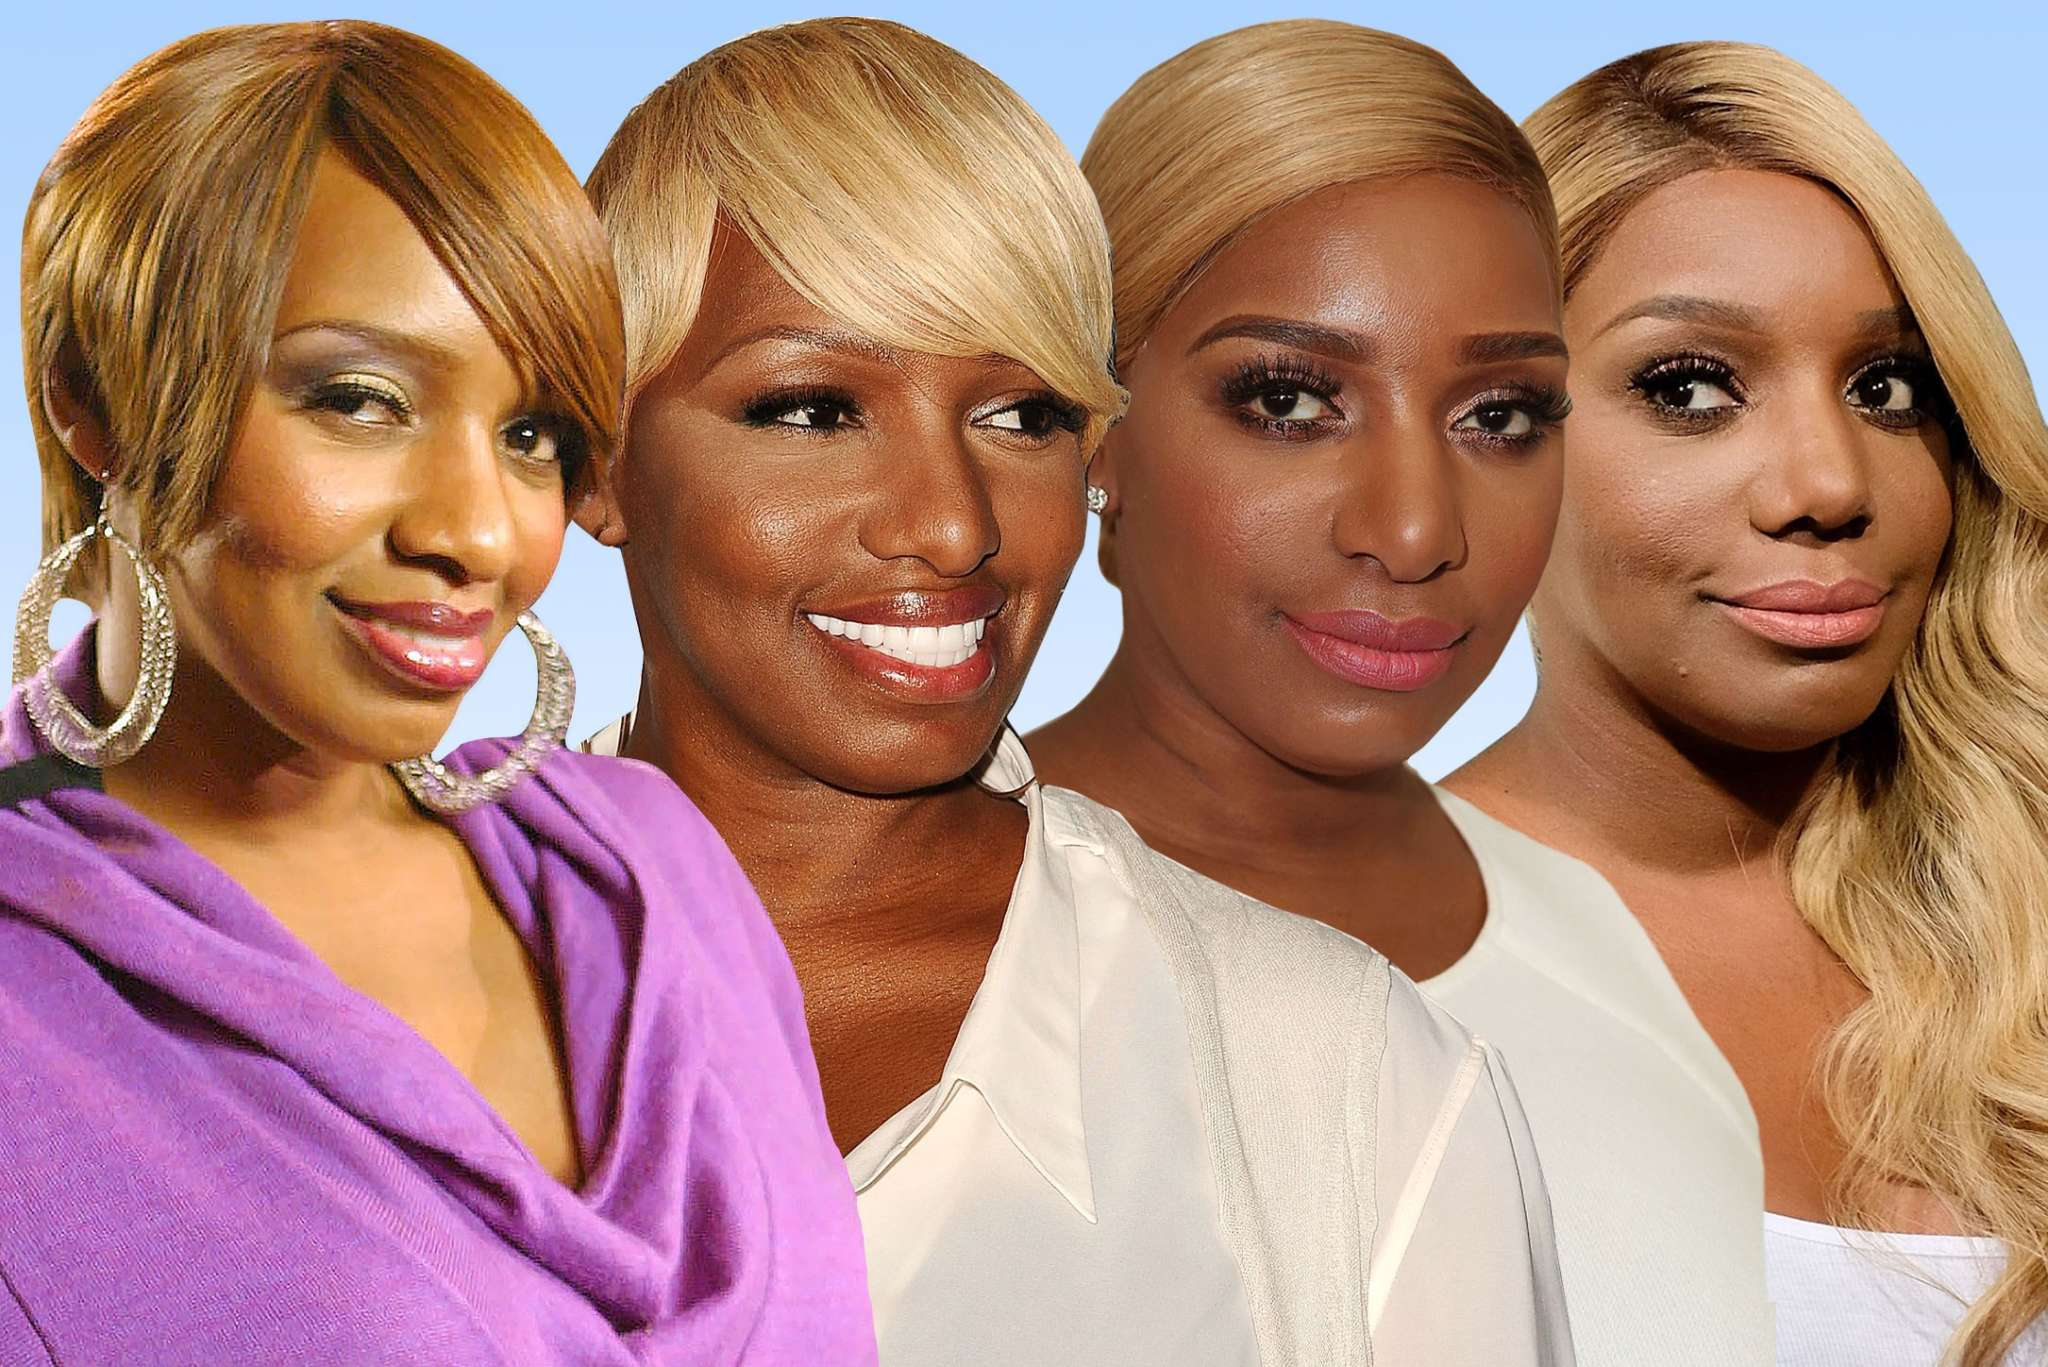 NeNe Leakes Changes Her Wig Game And People Accuse Her Of Trying Too Look White - See Her Latest Video In Which She Looks Gorgeous